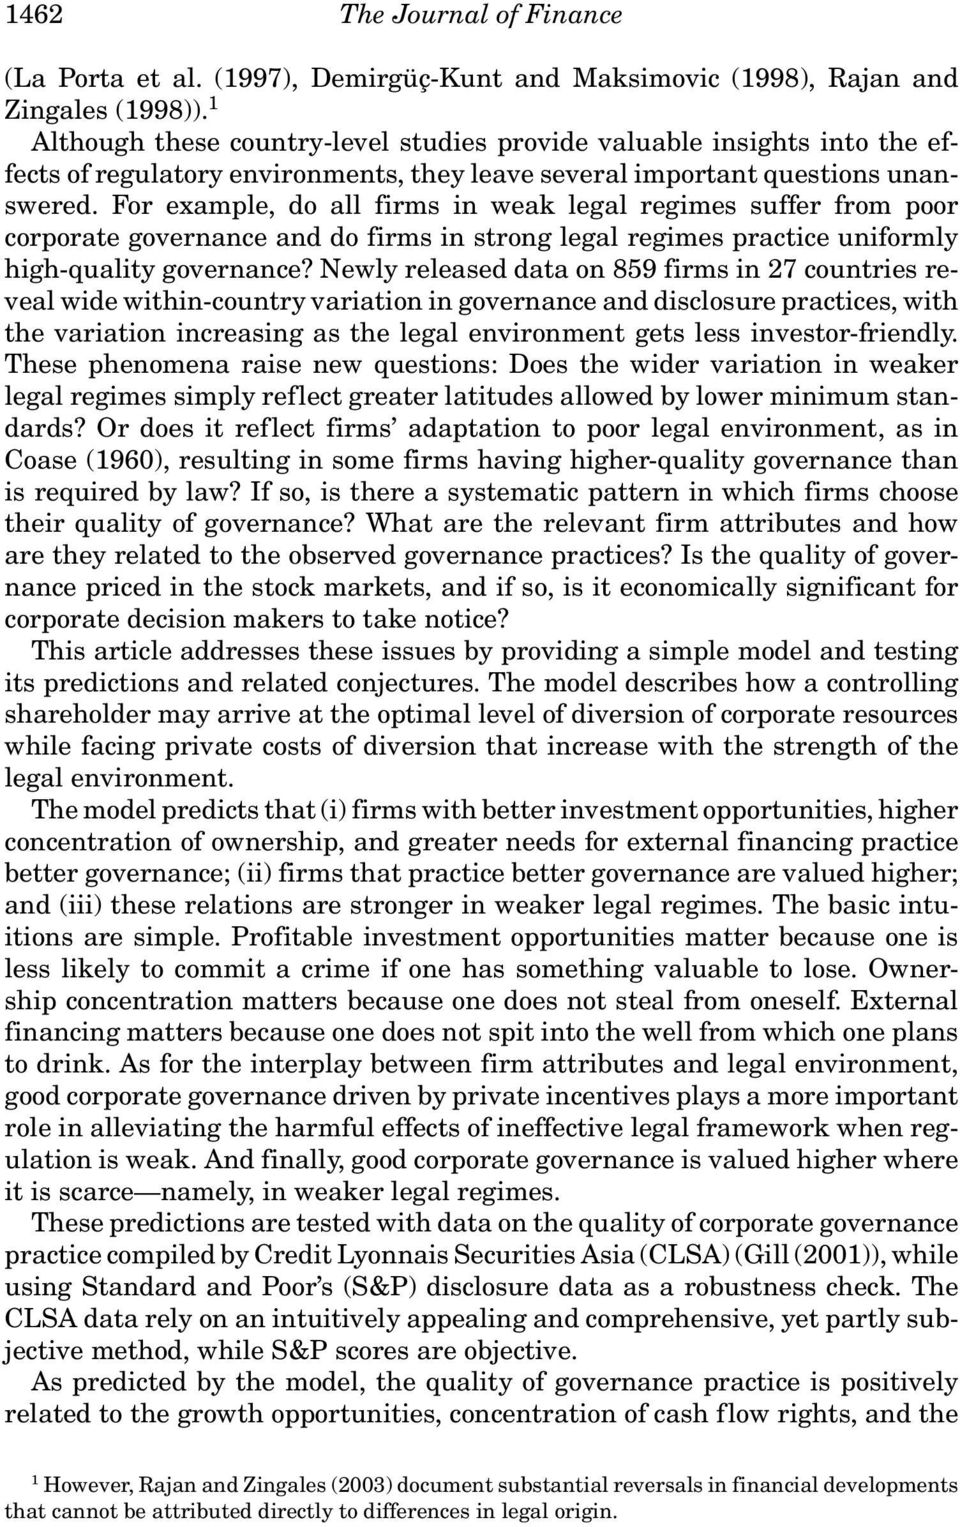 For example, do all firms in weak legal regimes suffer from poor corporate governance and do firms in strong legal regimes practice uniformly high-quality governance?